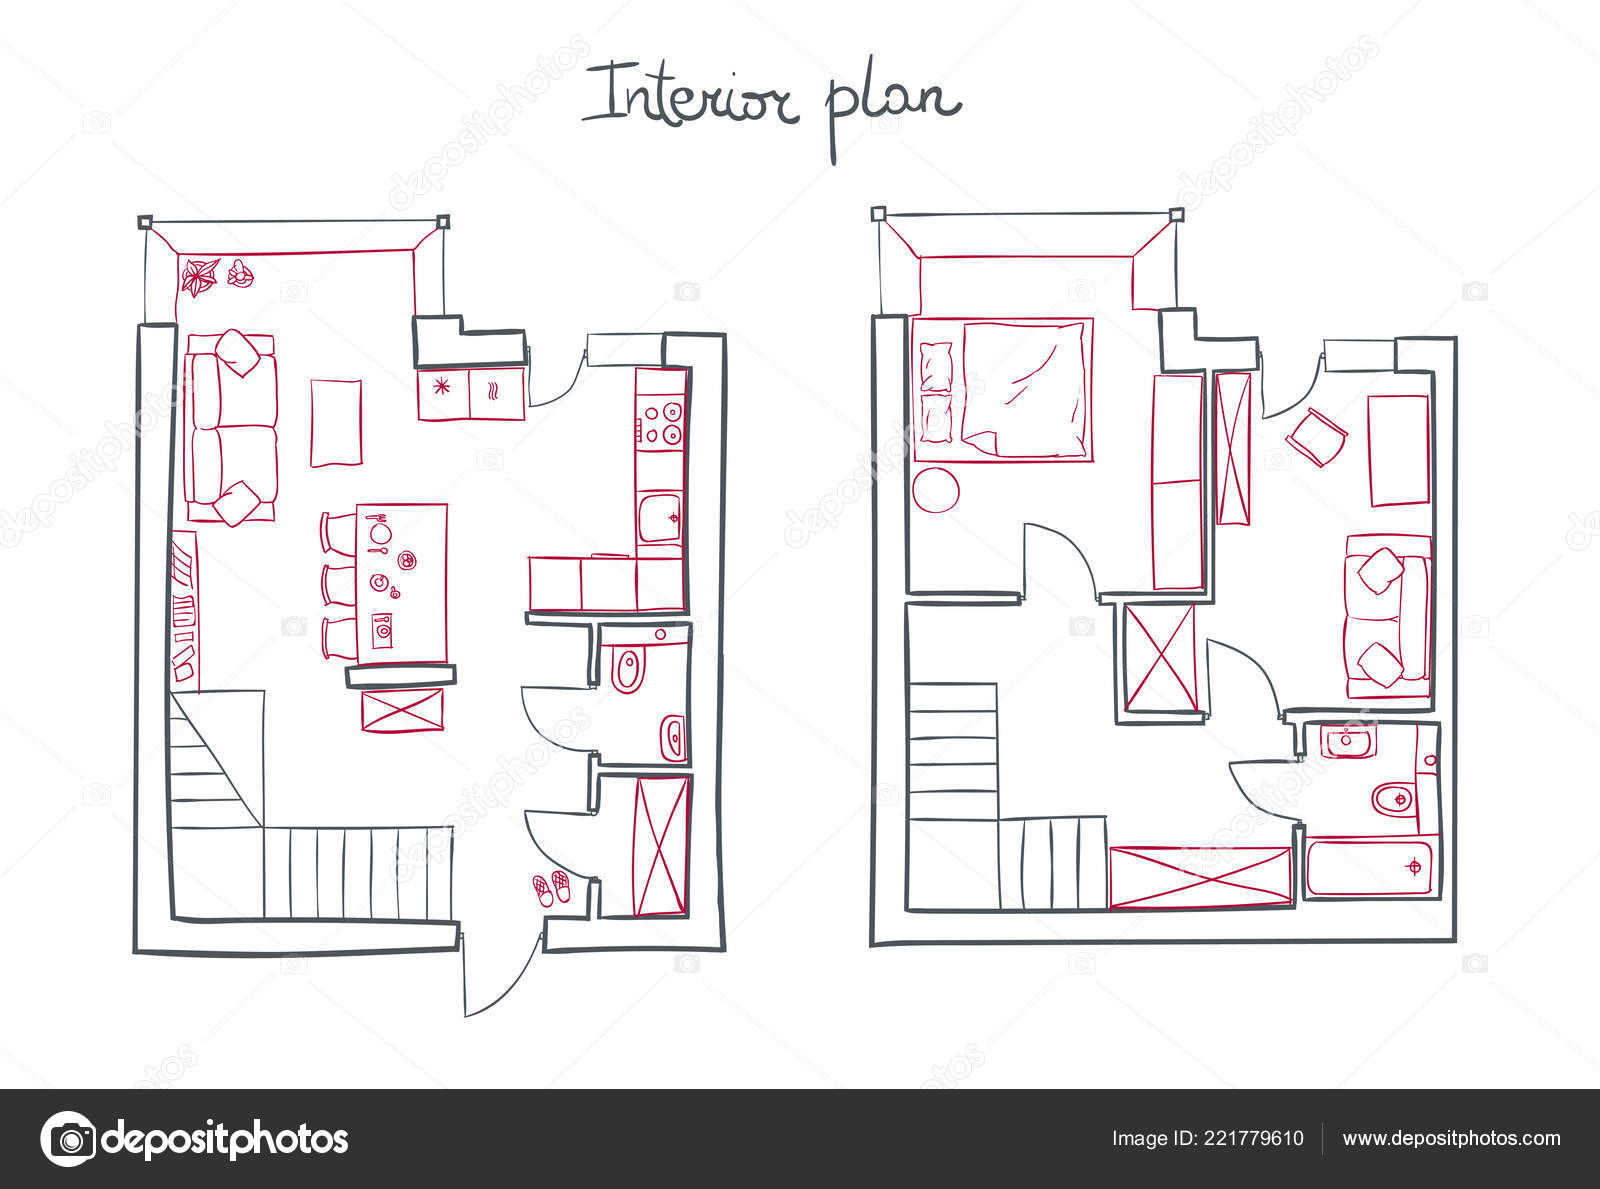 Plan D'appartement Plan D Architecture Simple Vecteur D Appartement Moderne Image